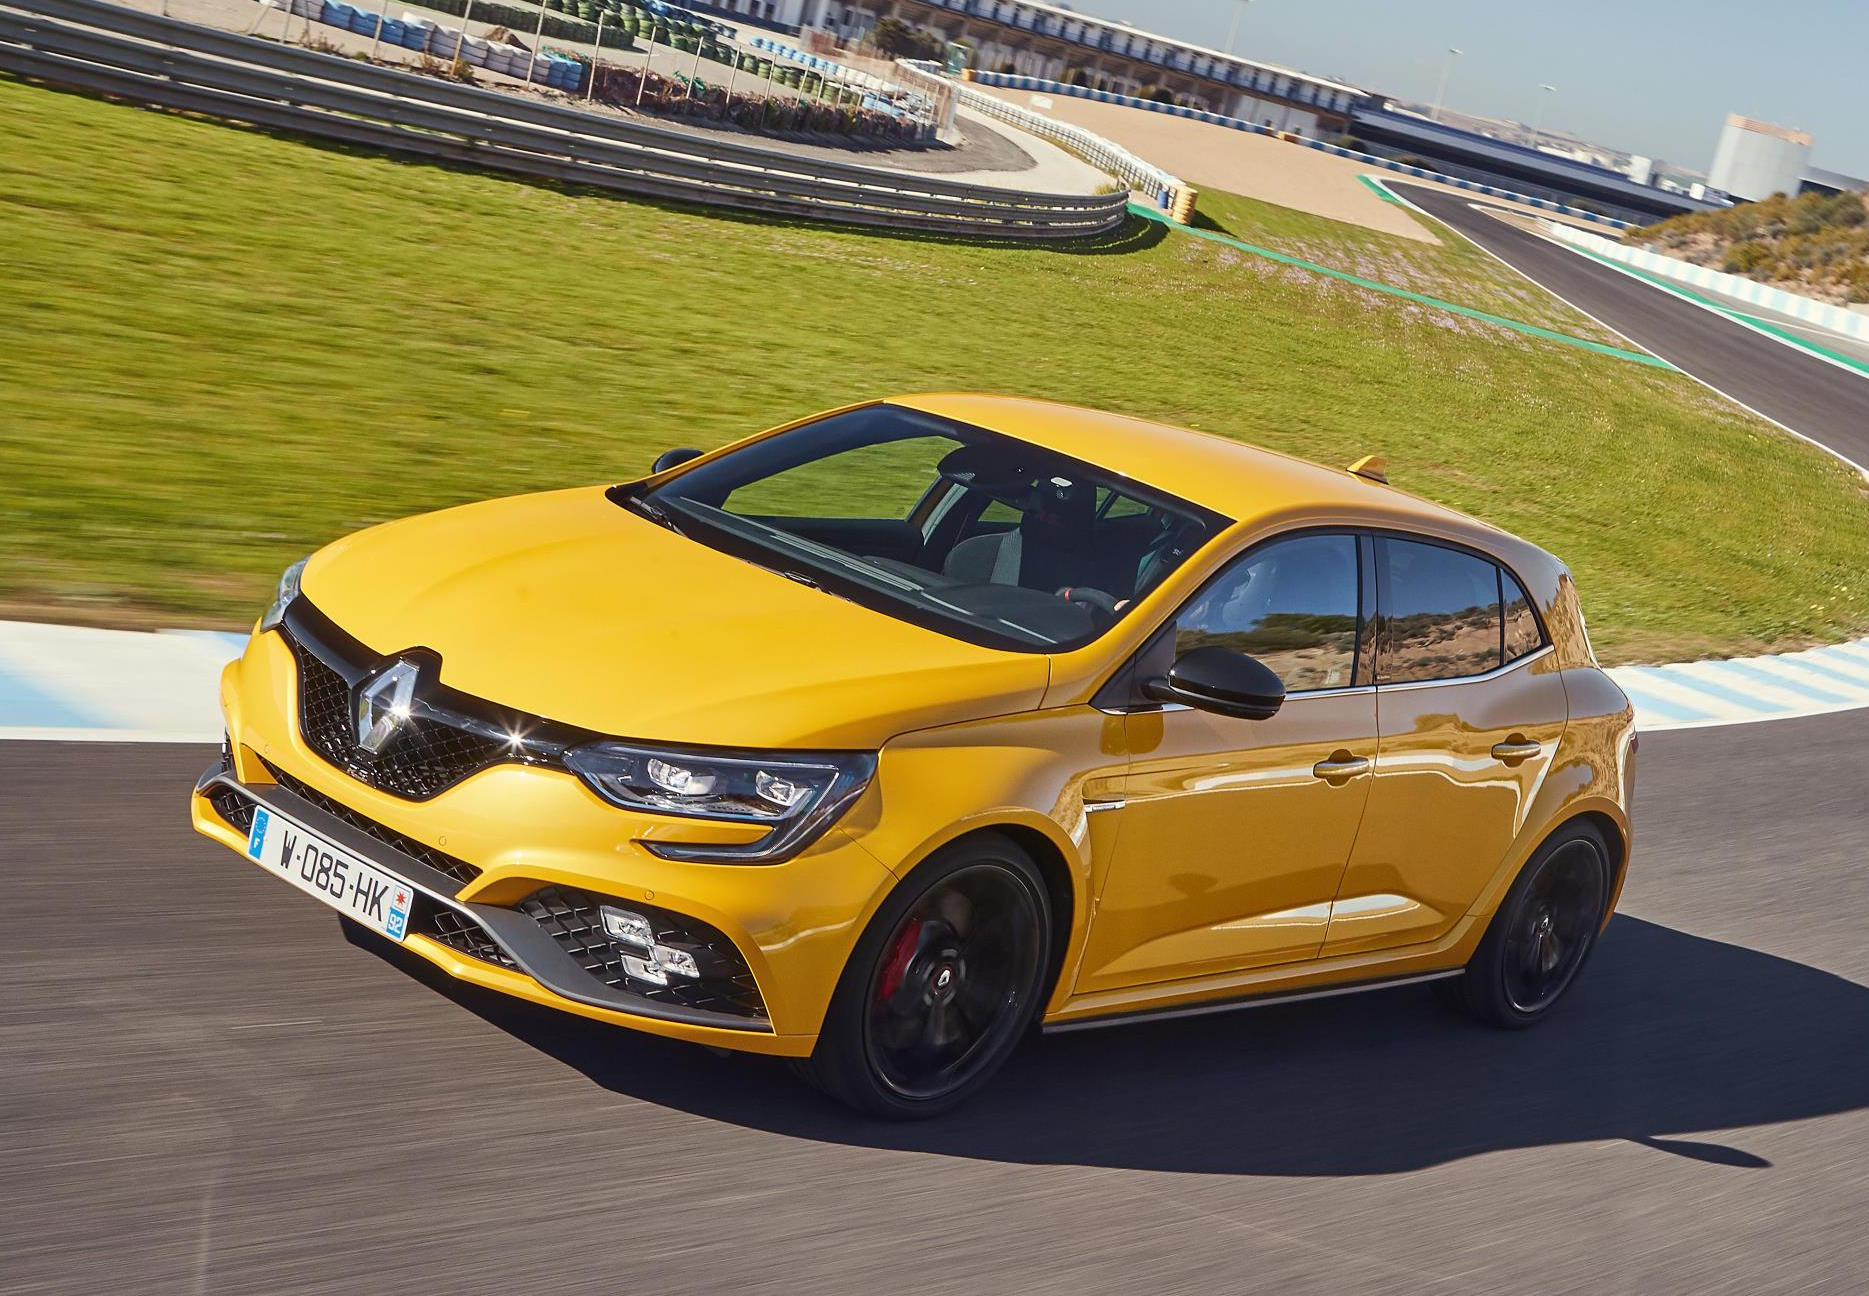 2018 renault megane rs on sale in australia from 44 990. Black Bedroom Furniture Sets. Home Design Ideas